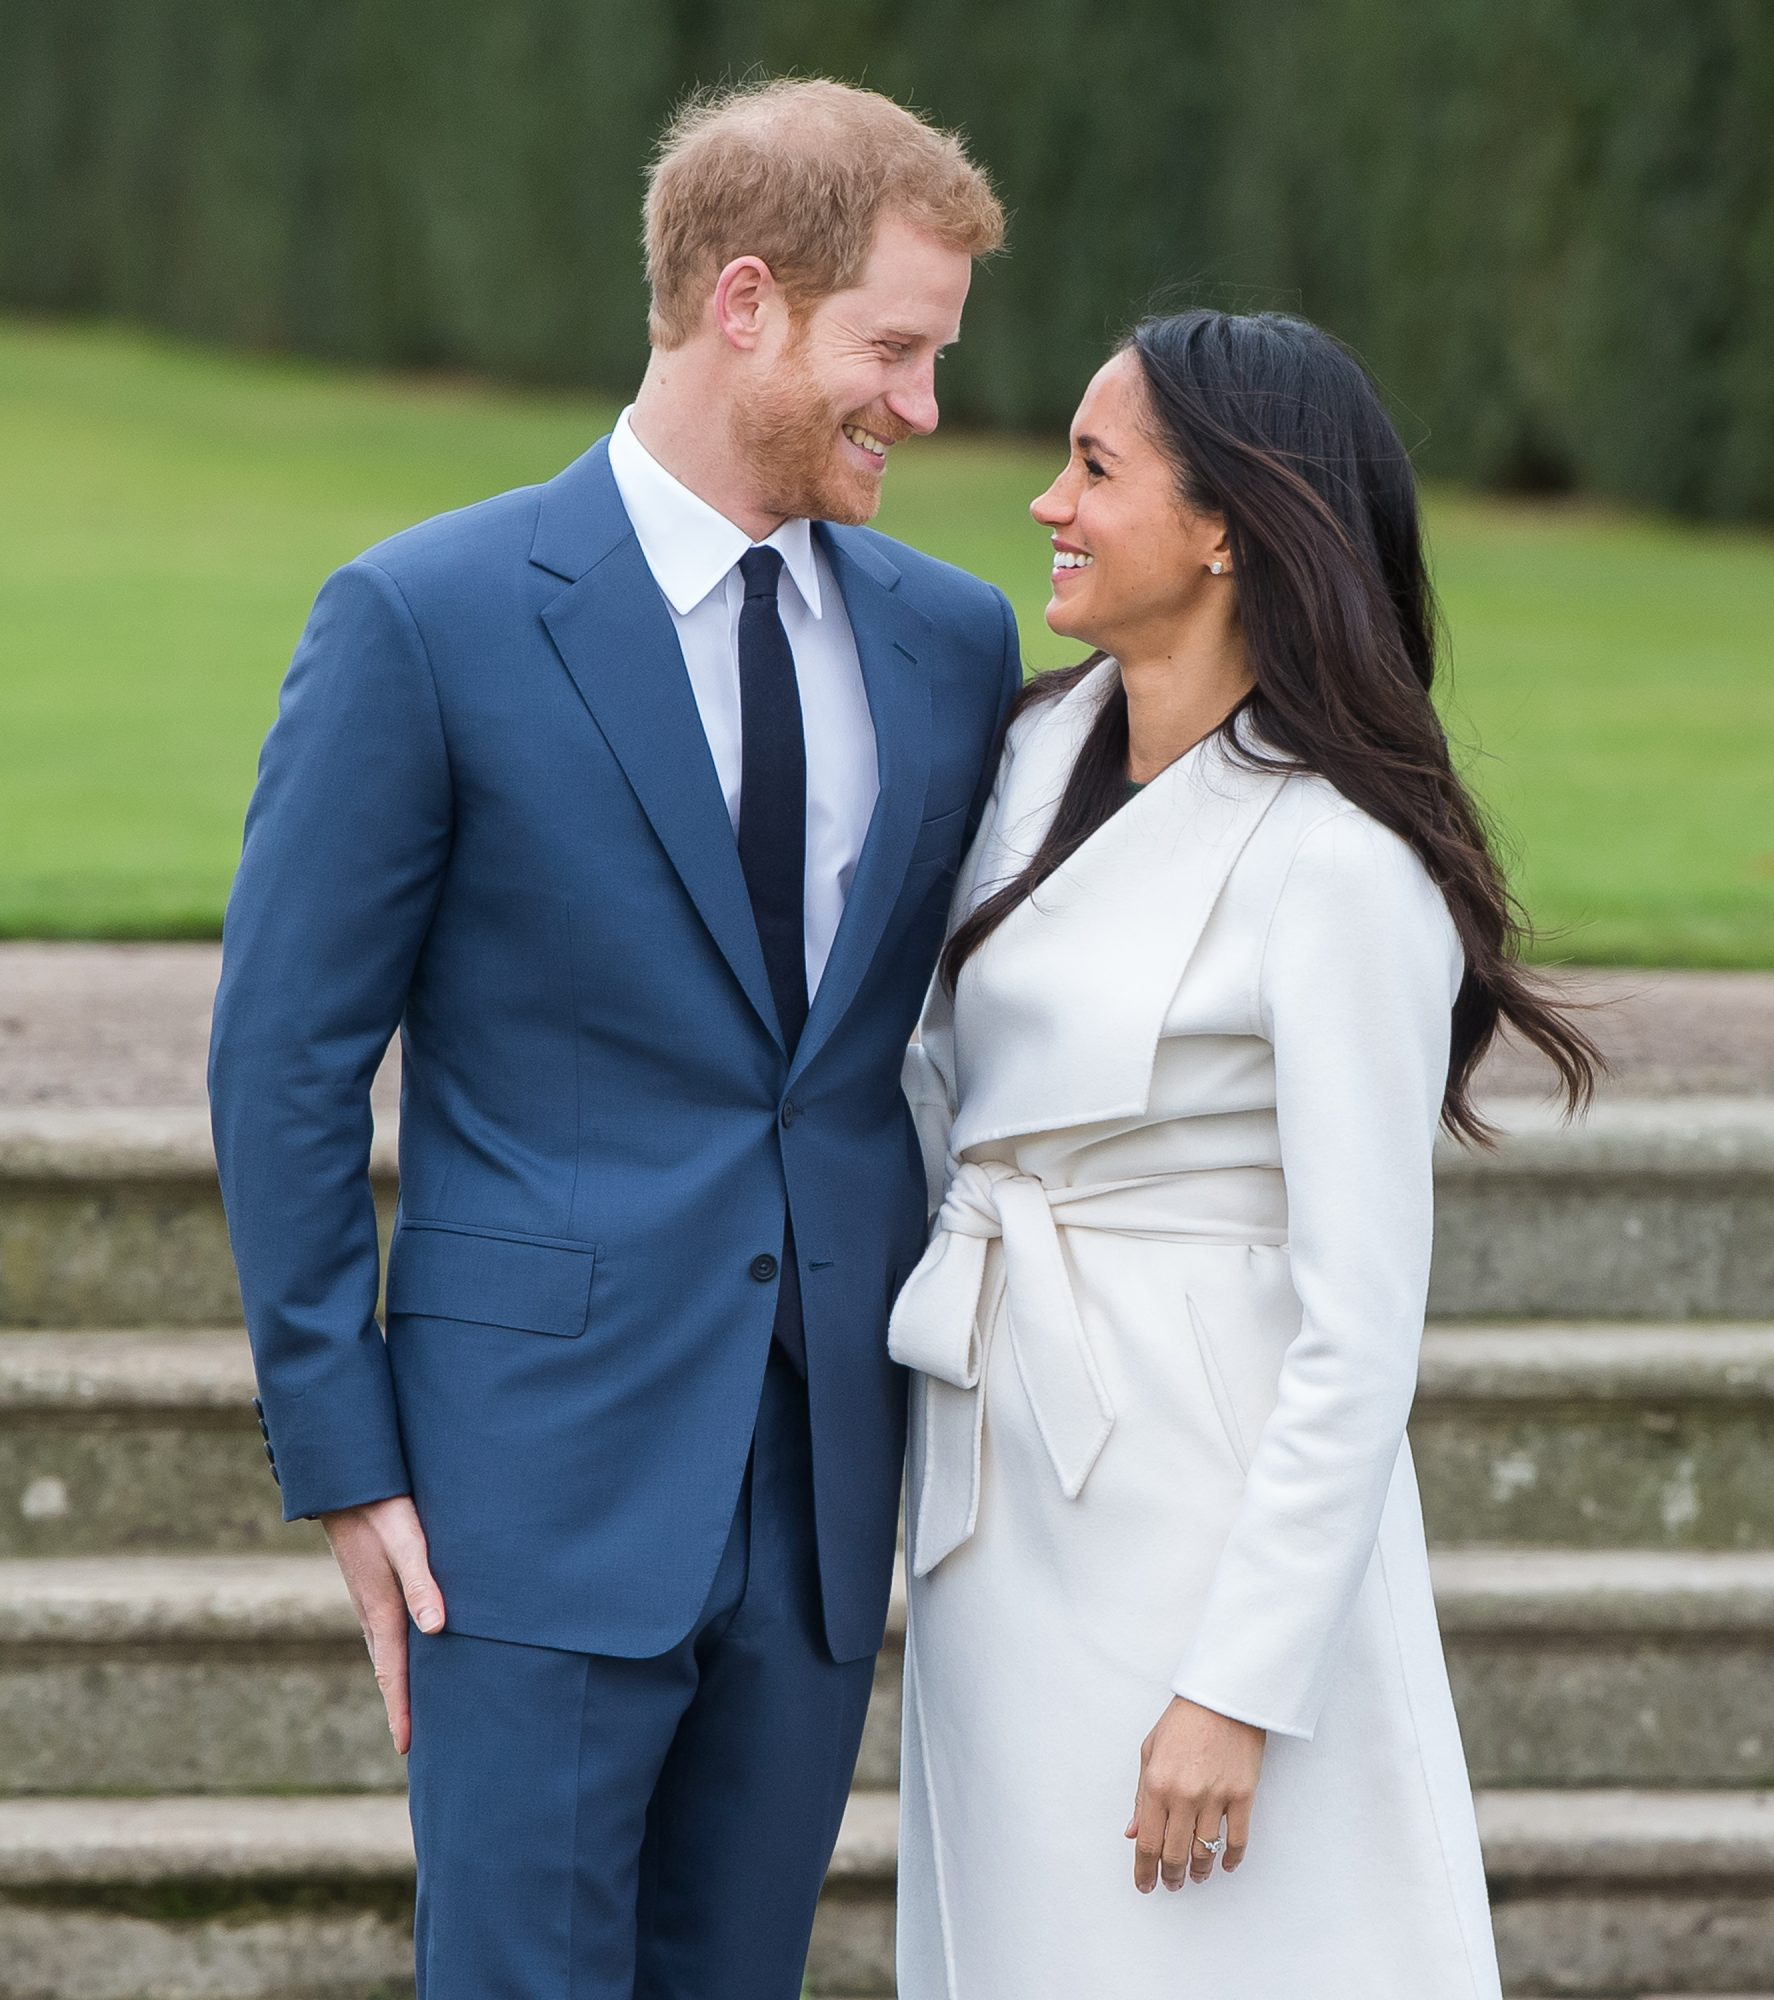 prince harry and meghan markle just revealed their wedding date martha stewart prince harry and meghan markle just